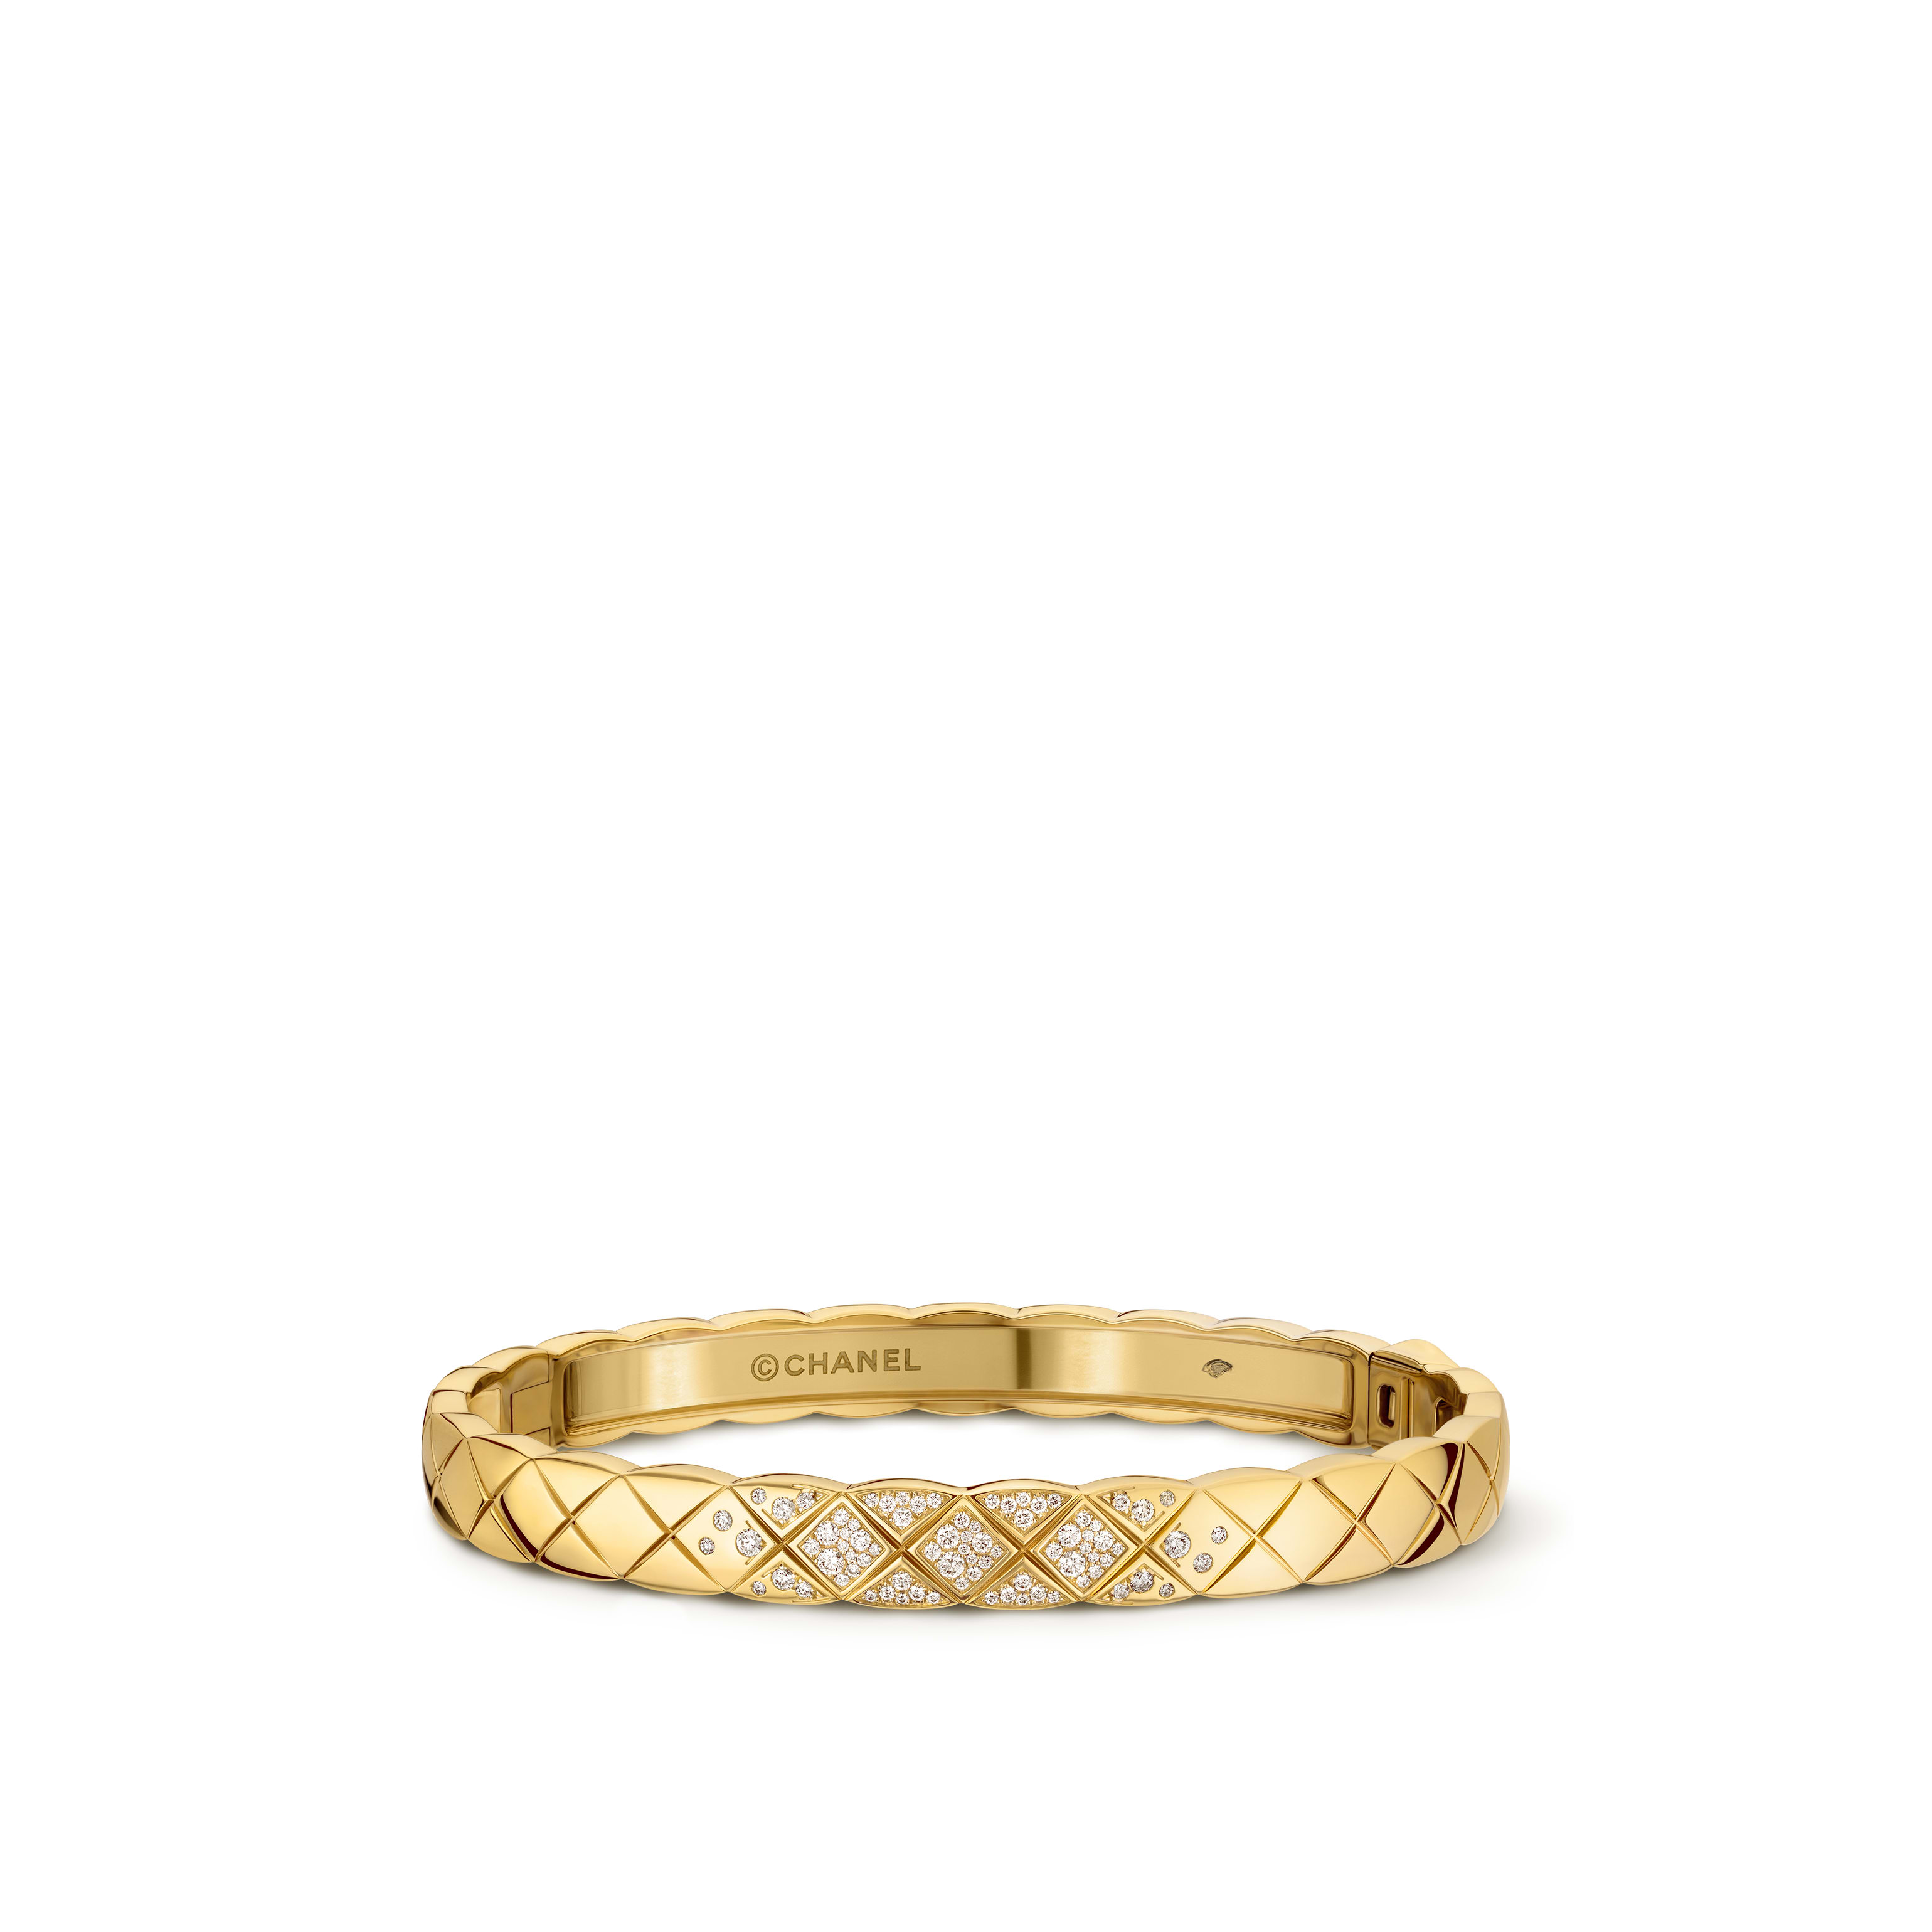 Coco Crush bracelet - Quilted motif, 18K yellow gold, diamonds - CHANEL - Default view - see standard sized version